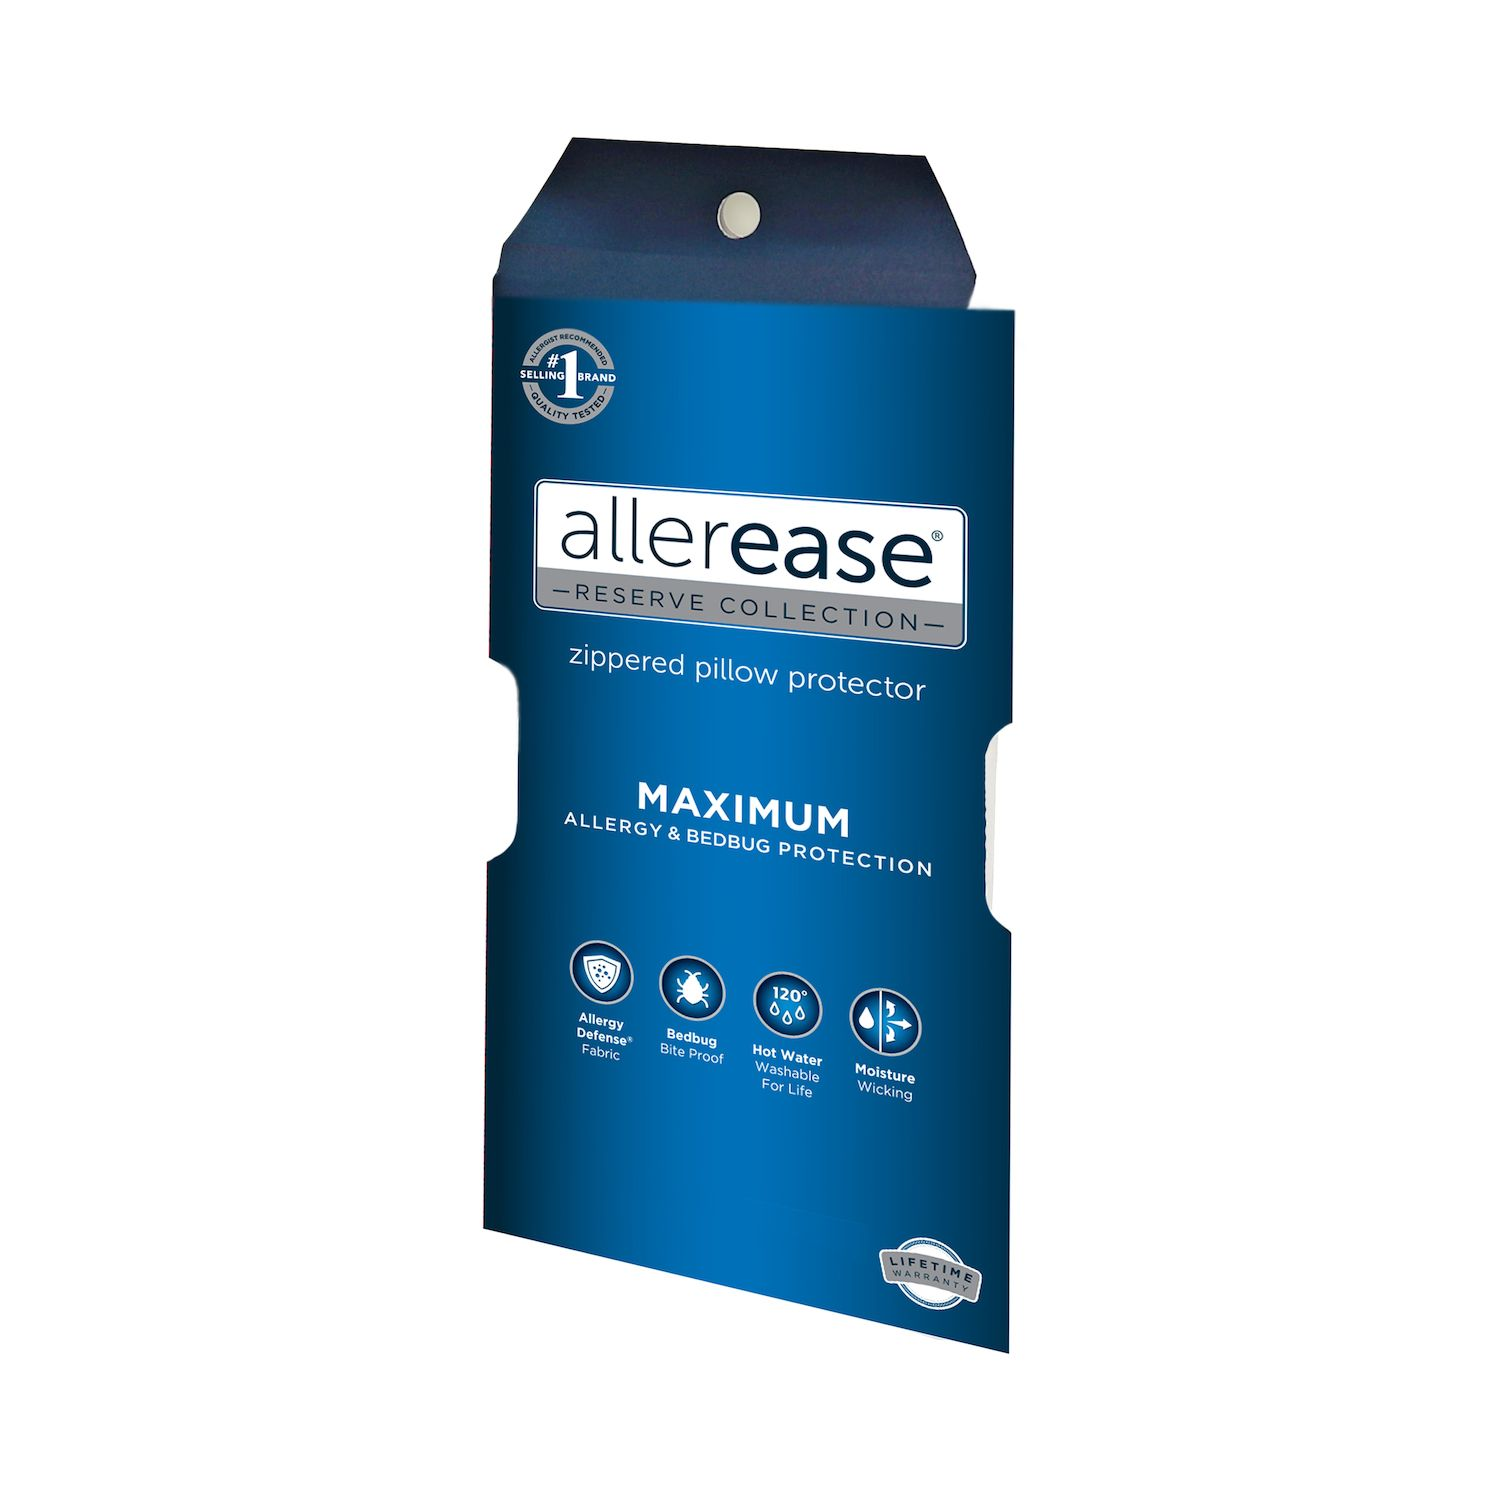 allerease maximum bedbug u0026 allergy protection pillow protector